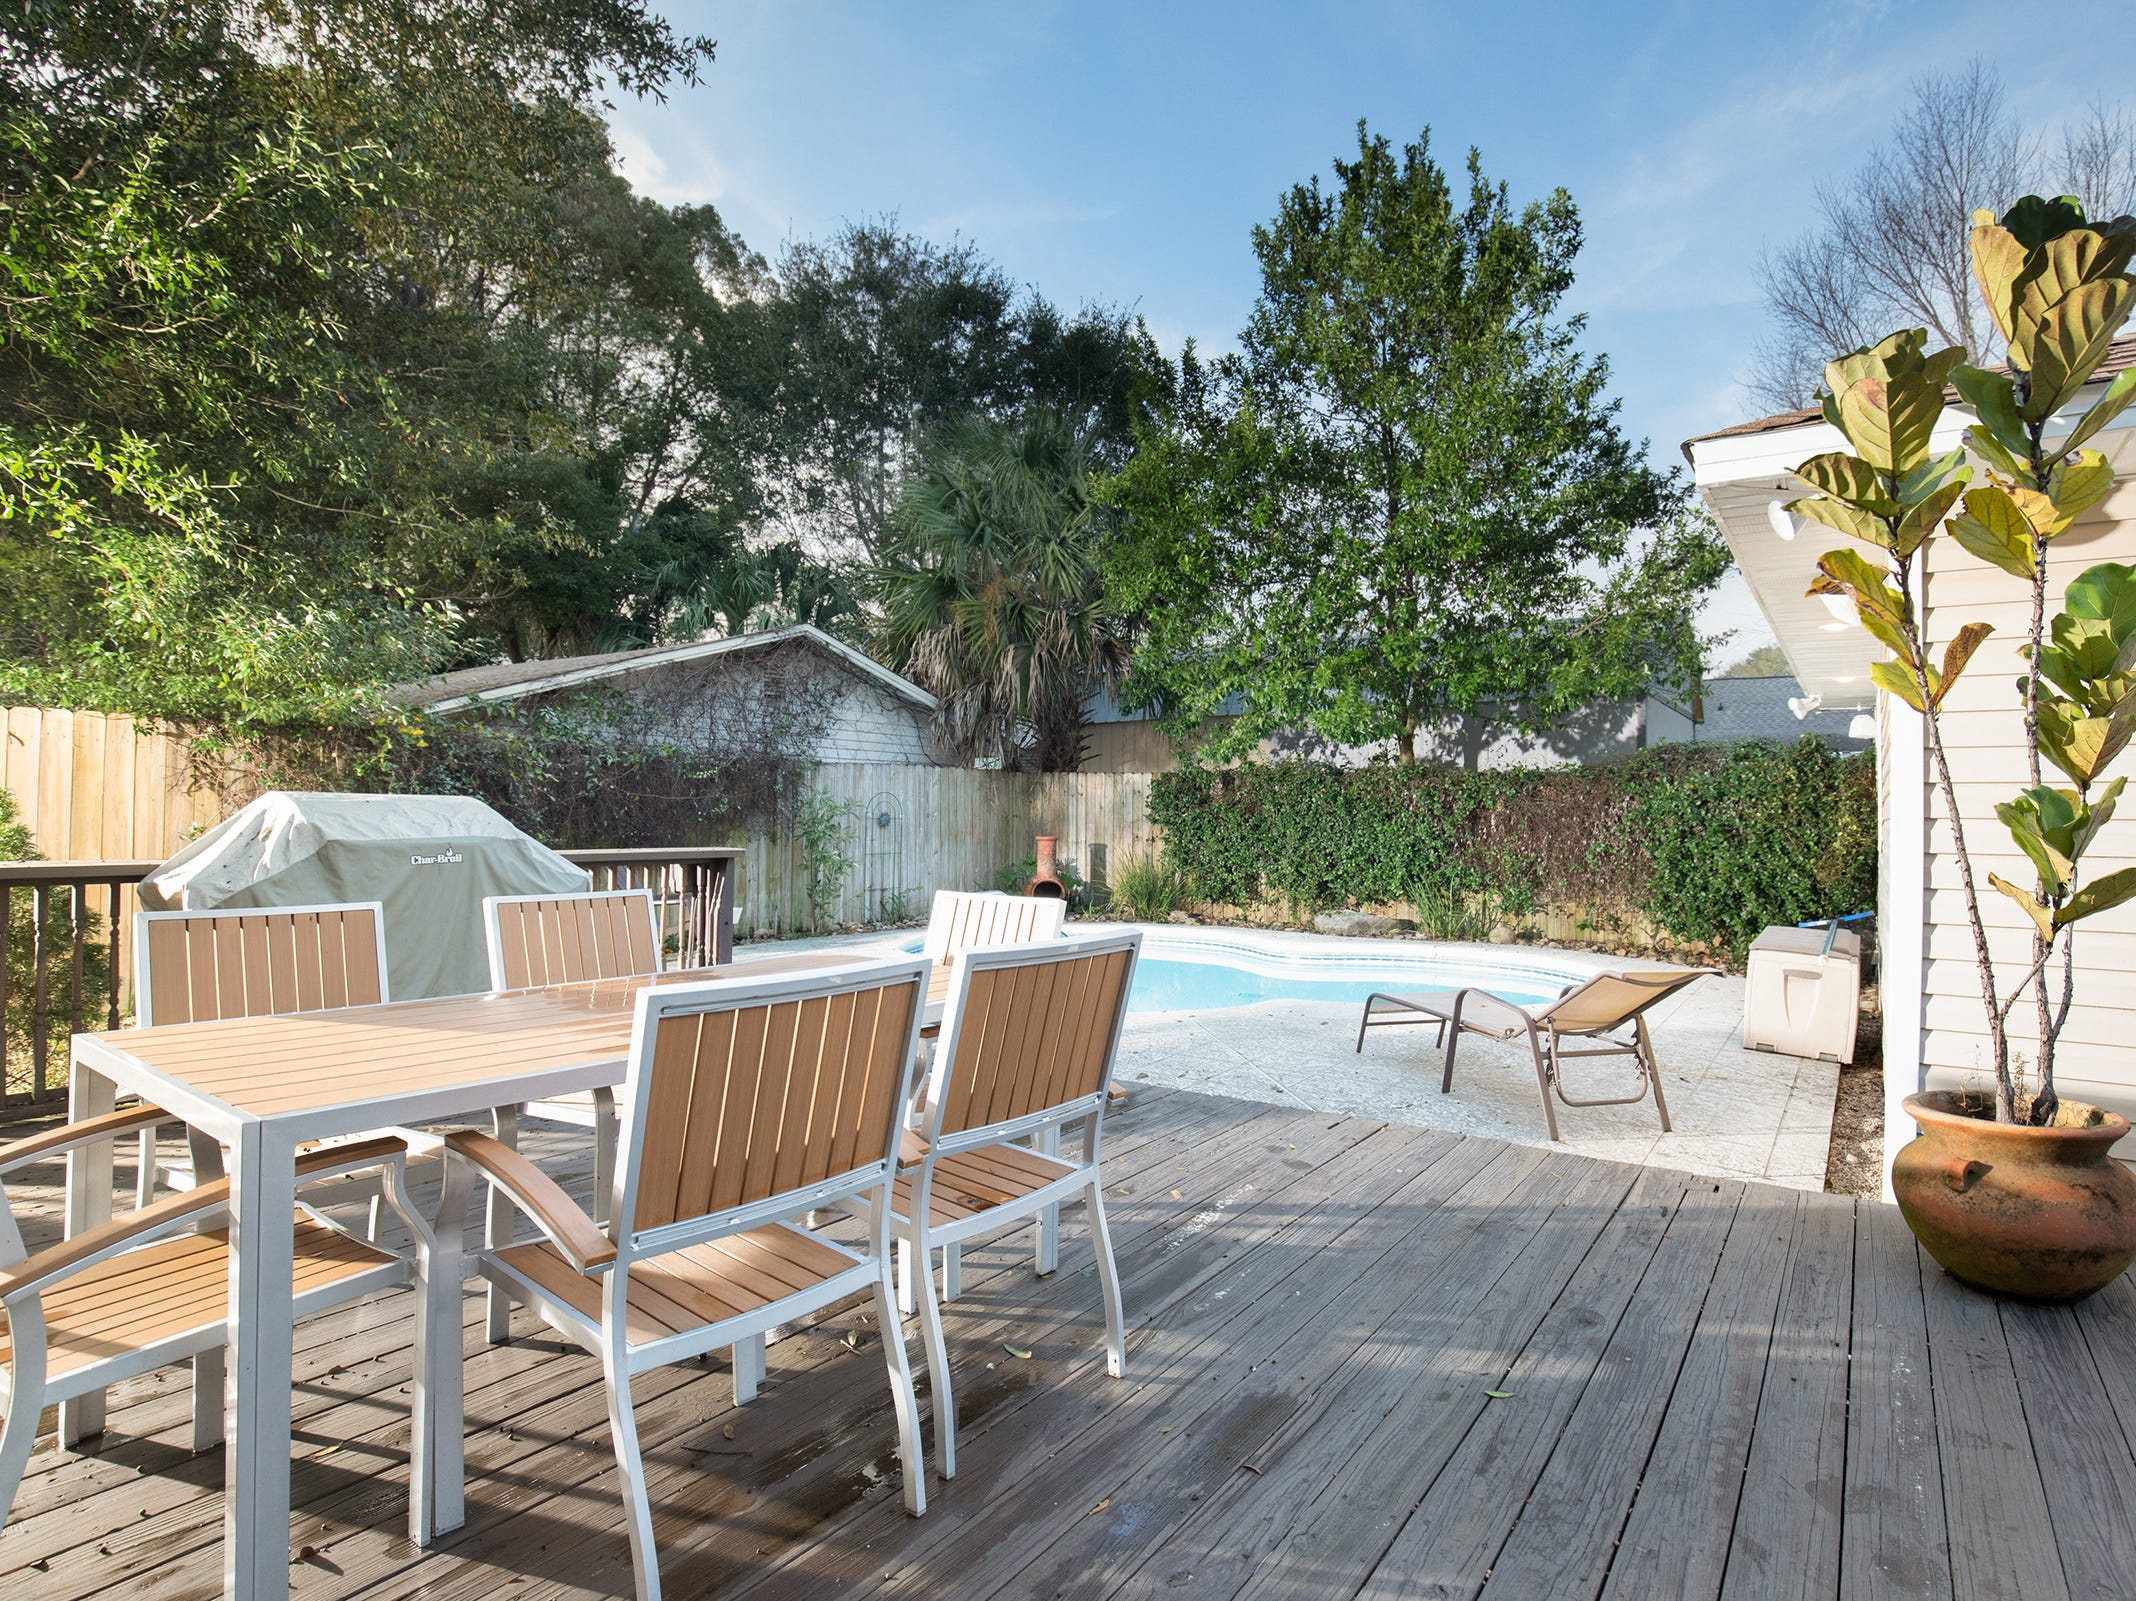 1516 East Brainerd St.The pool deck is perfect for gatherings.